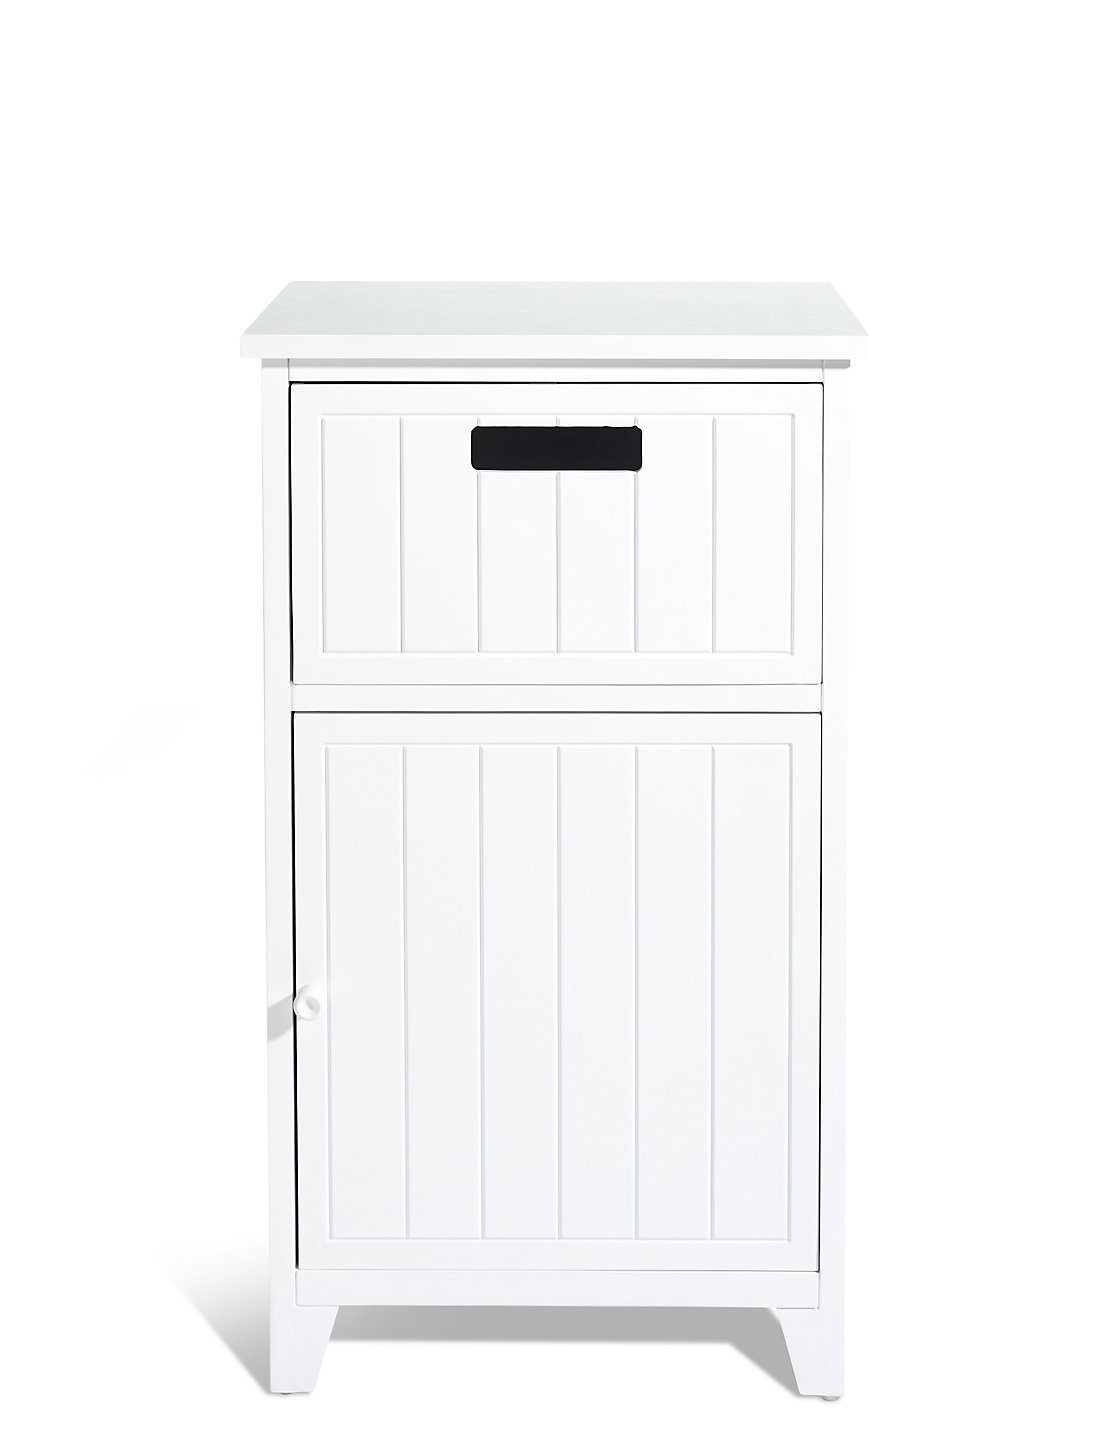 Bathroom drawer units in white - Whitby Towel Cupboard